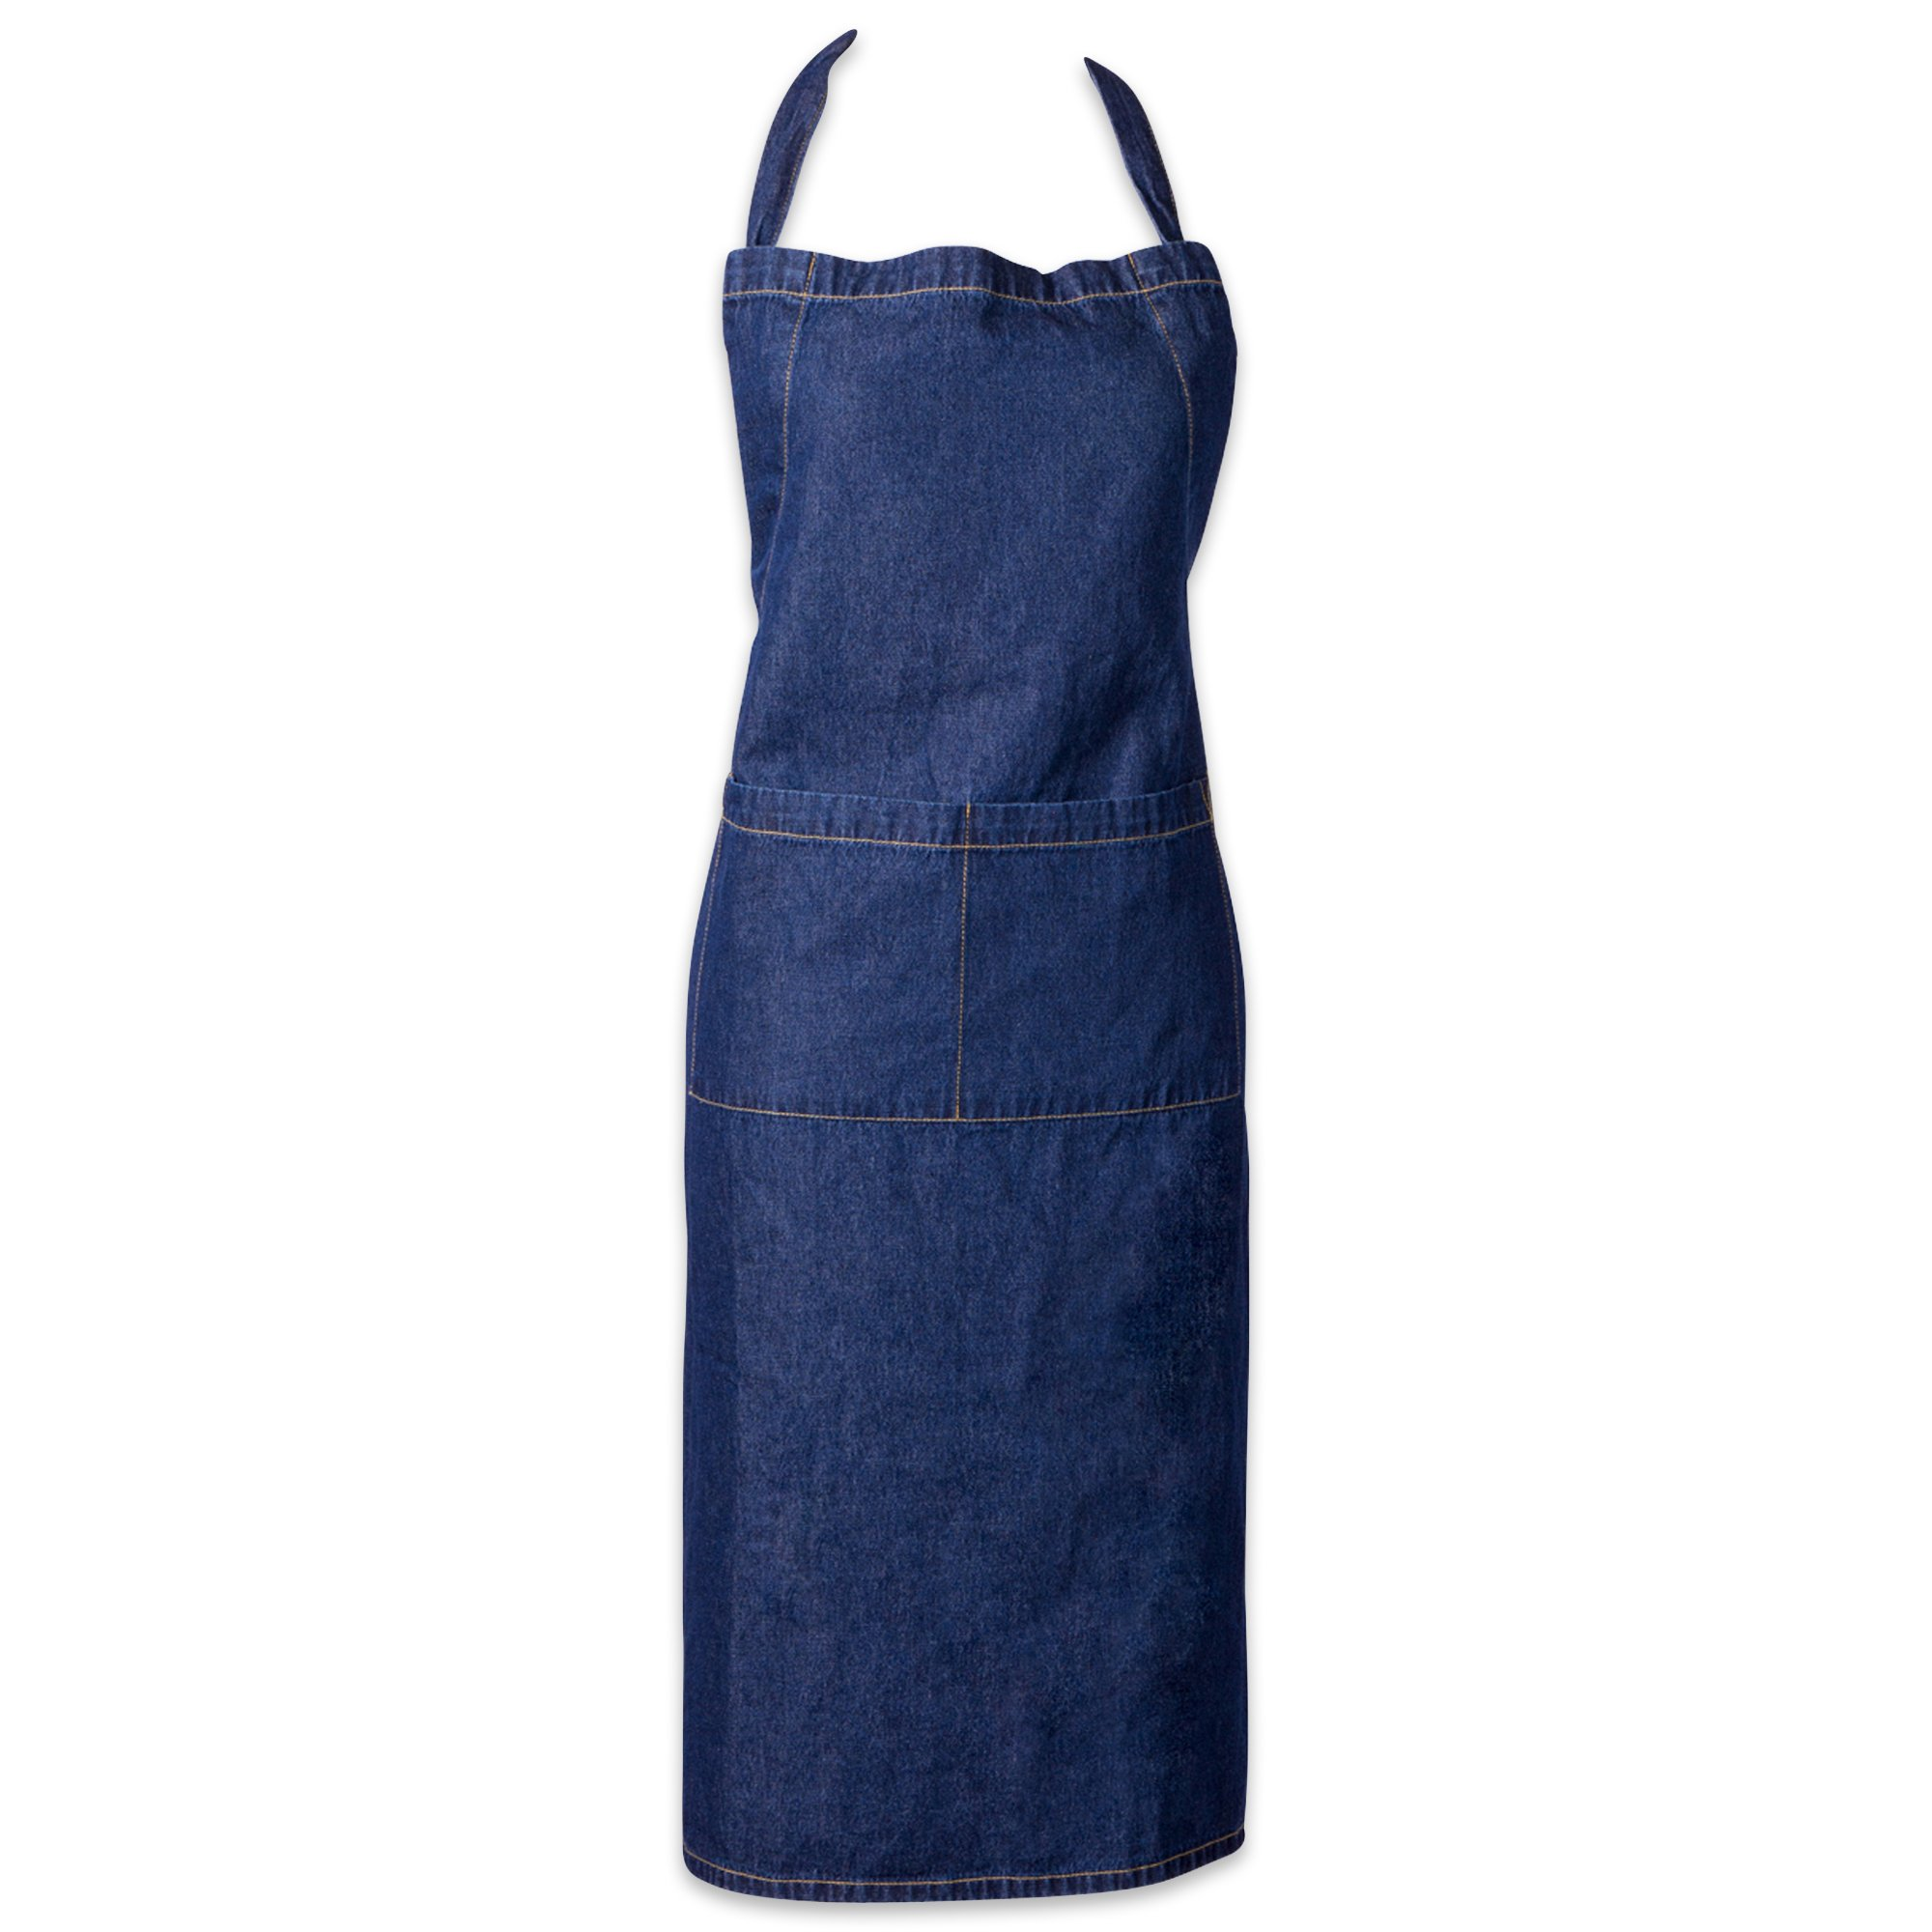 DII 100% Cotton, Professional Bib Chef Apron, Adjustable Neck & Waist Ties, Front Pocket, Machine Washable, Perfect for Cooking, Baking, Barbequing, More – Denim